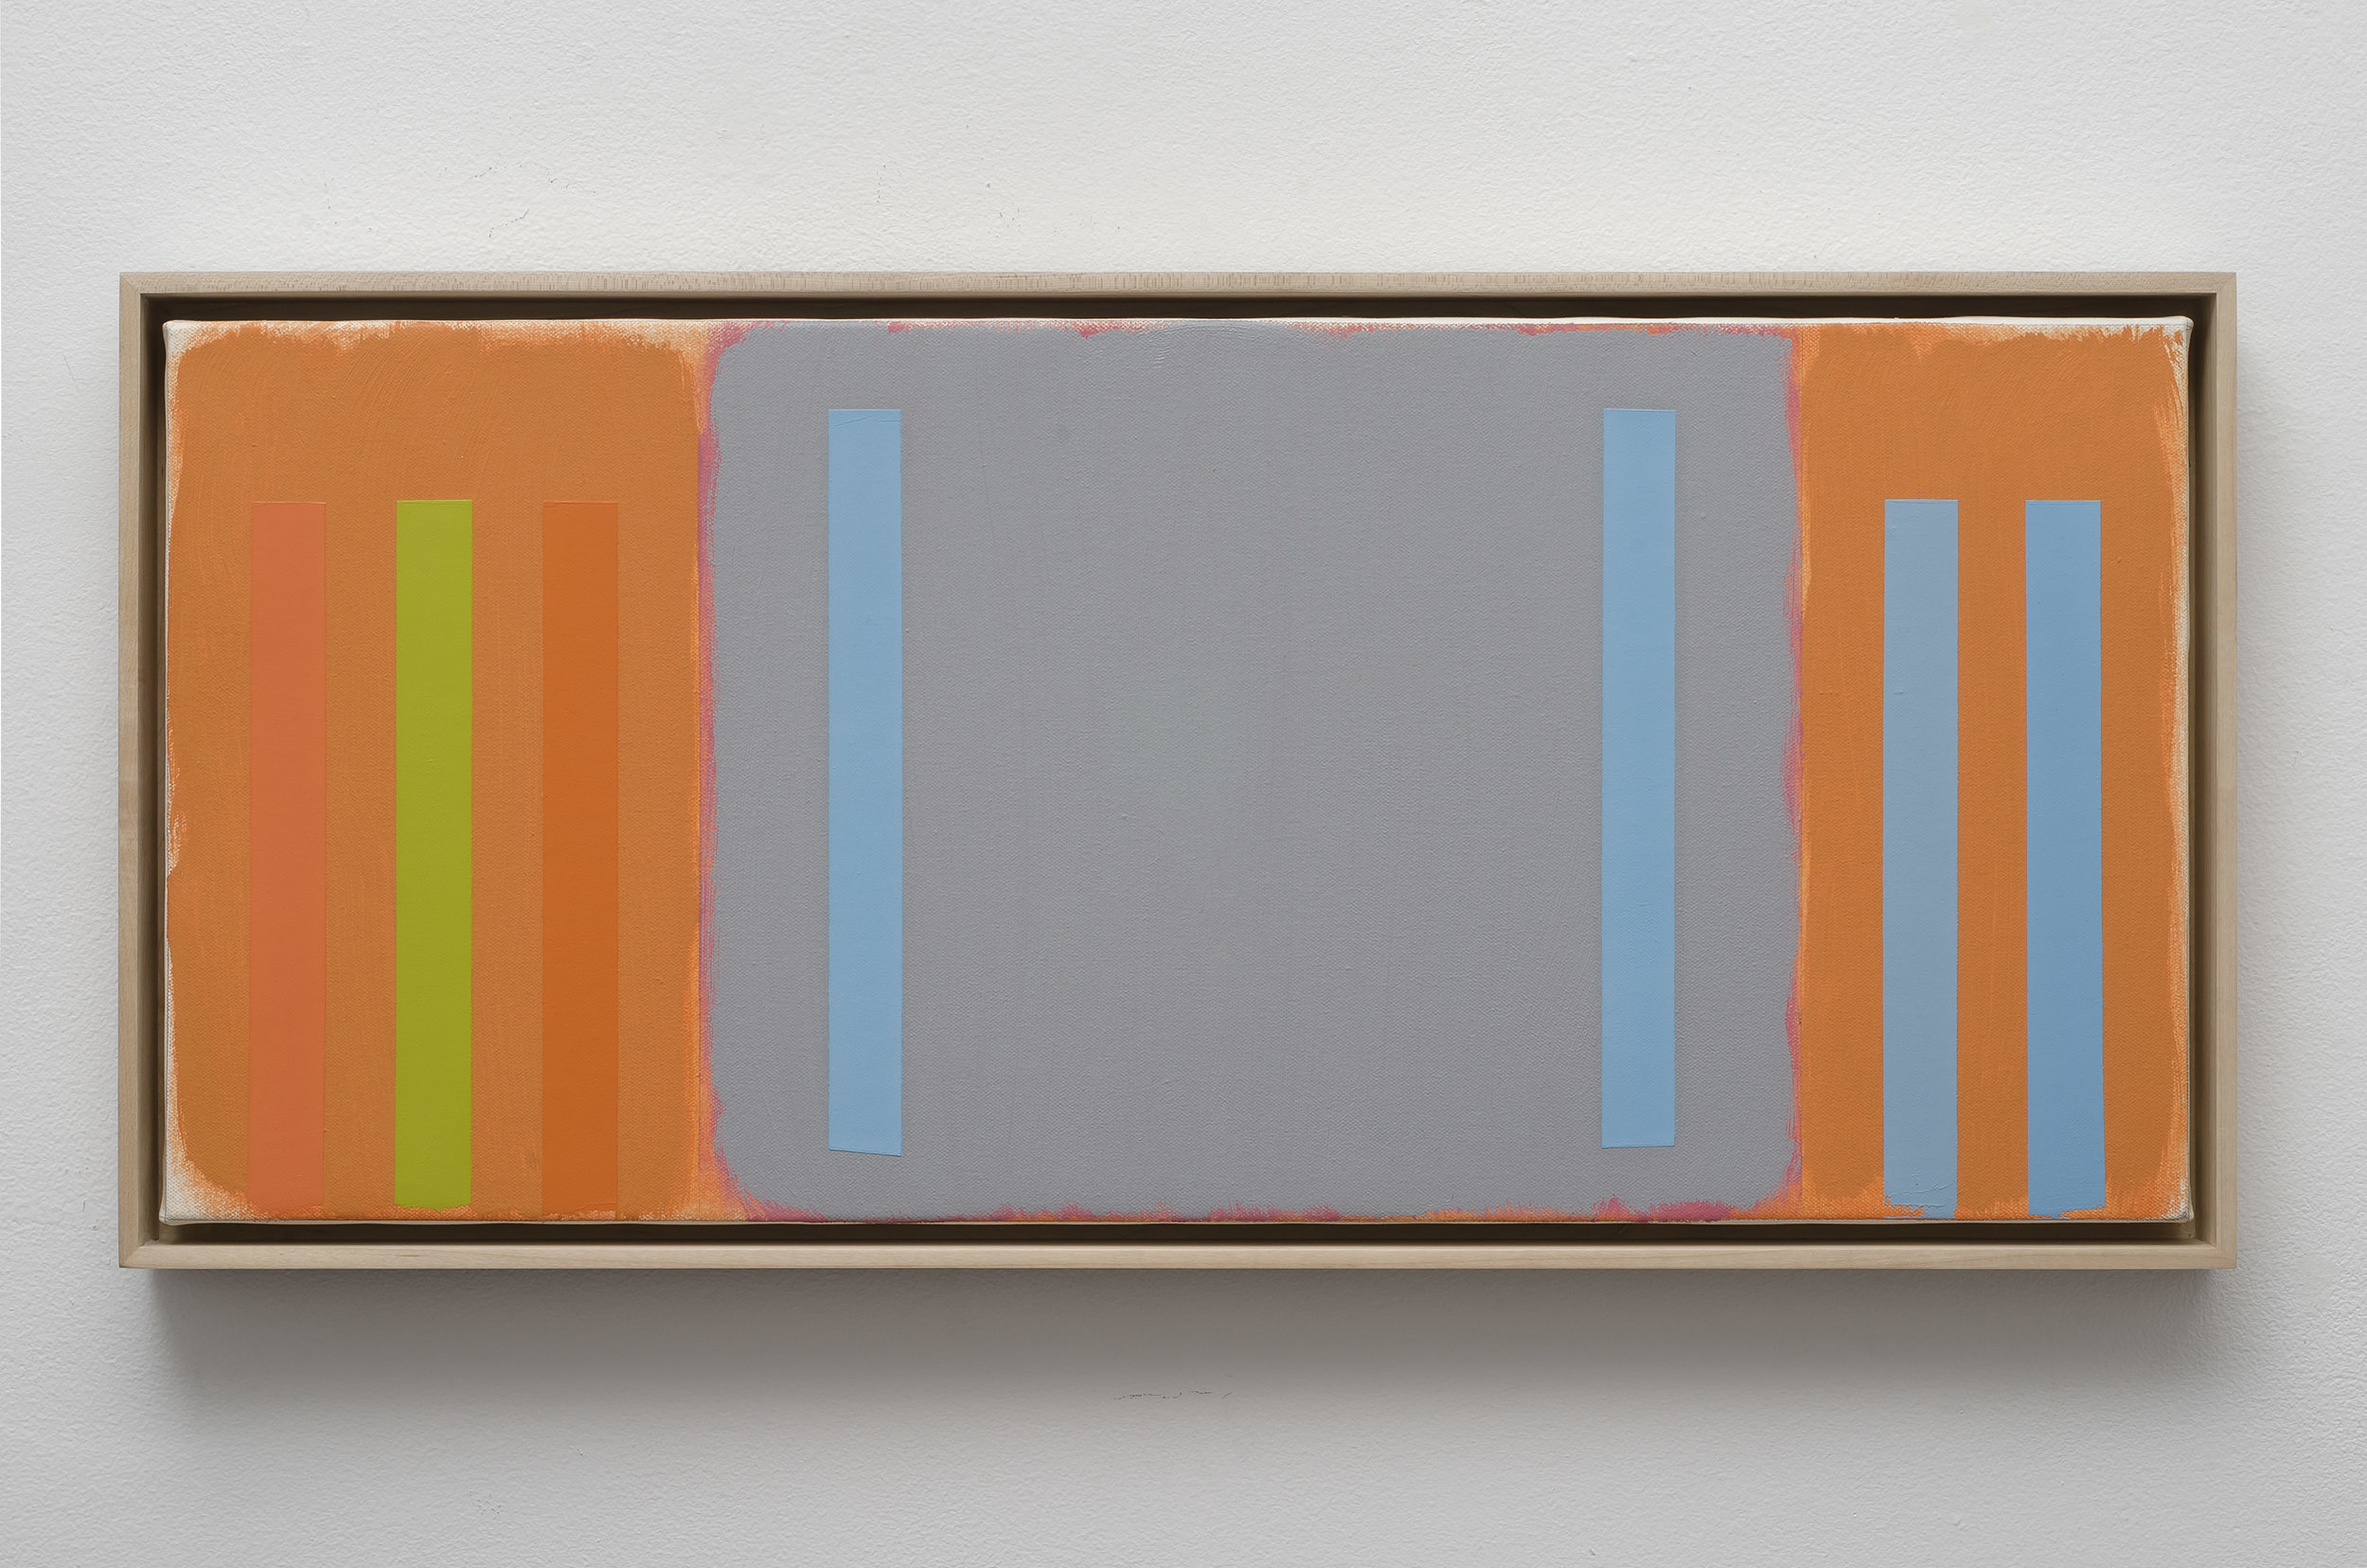 Untitled Abstract Composition (PC05-15), 2005  acrylic on canvas 12 1/4 x 28 1/4 inches; 31.1 x 71.8 centimeters